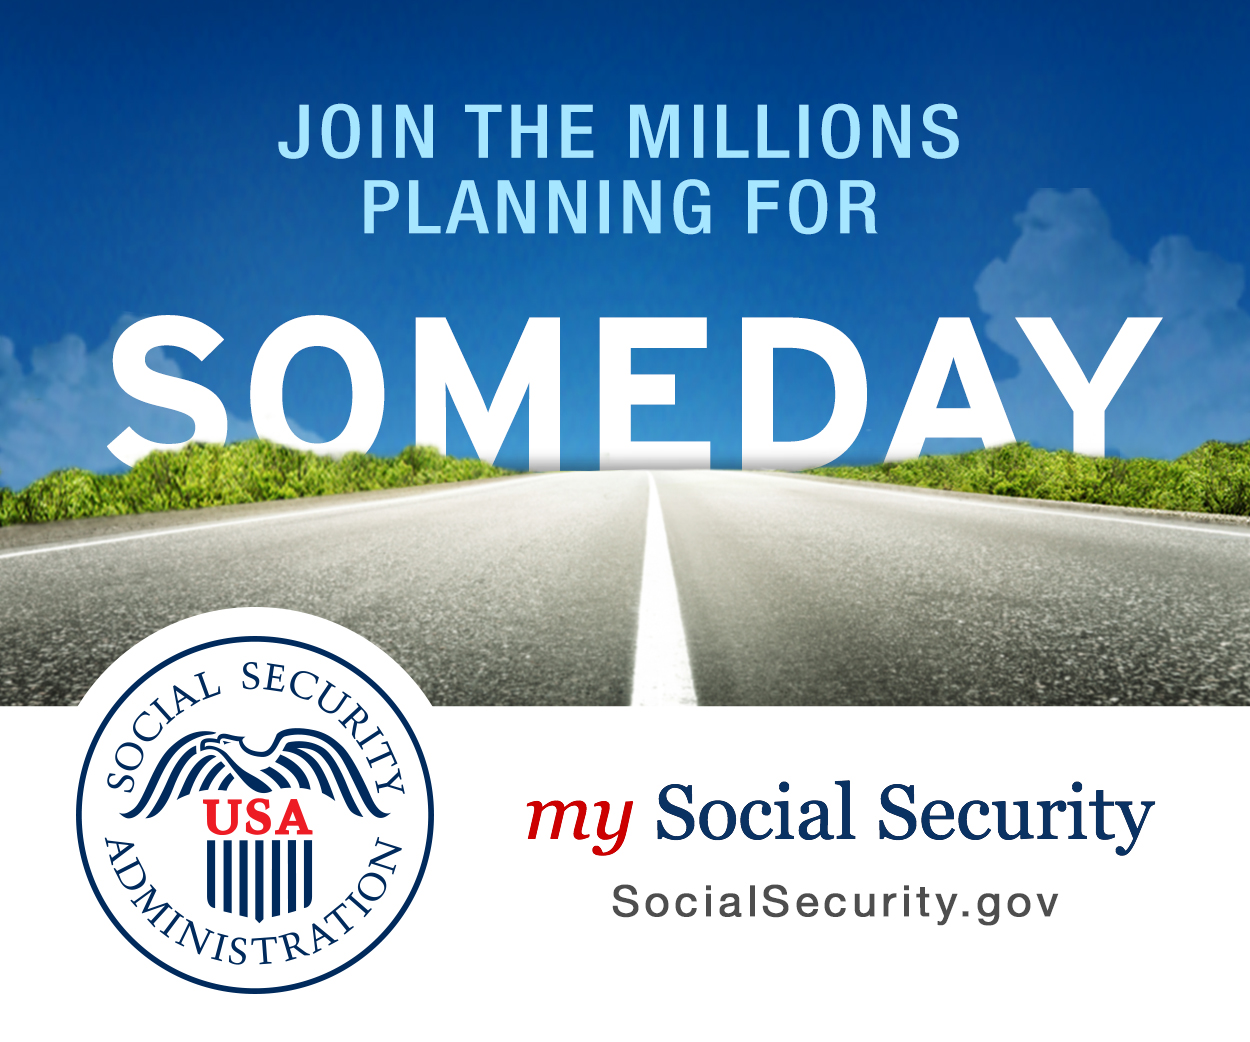 Http www socialsecurity gov myaccount